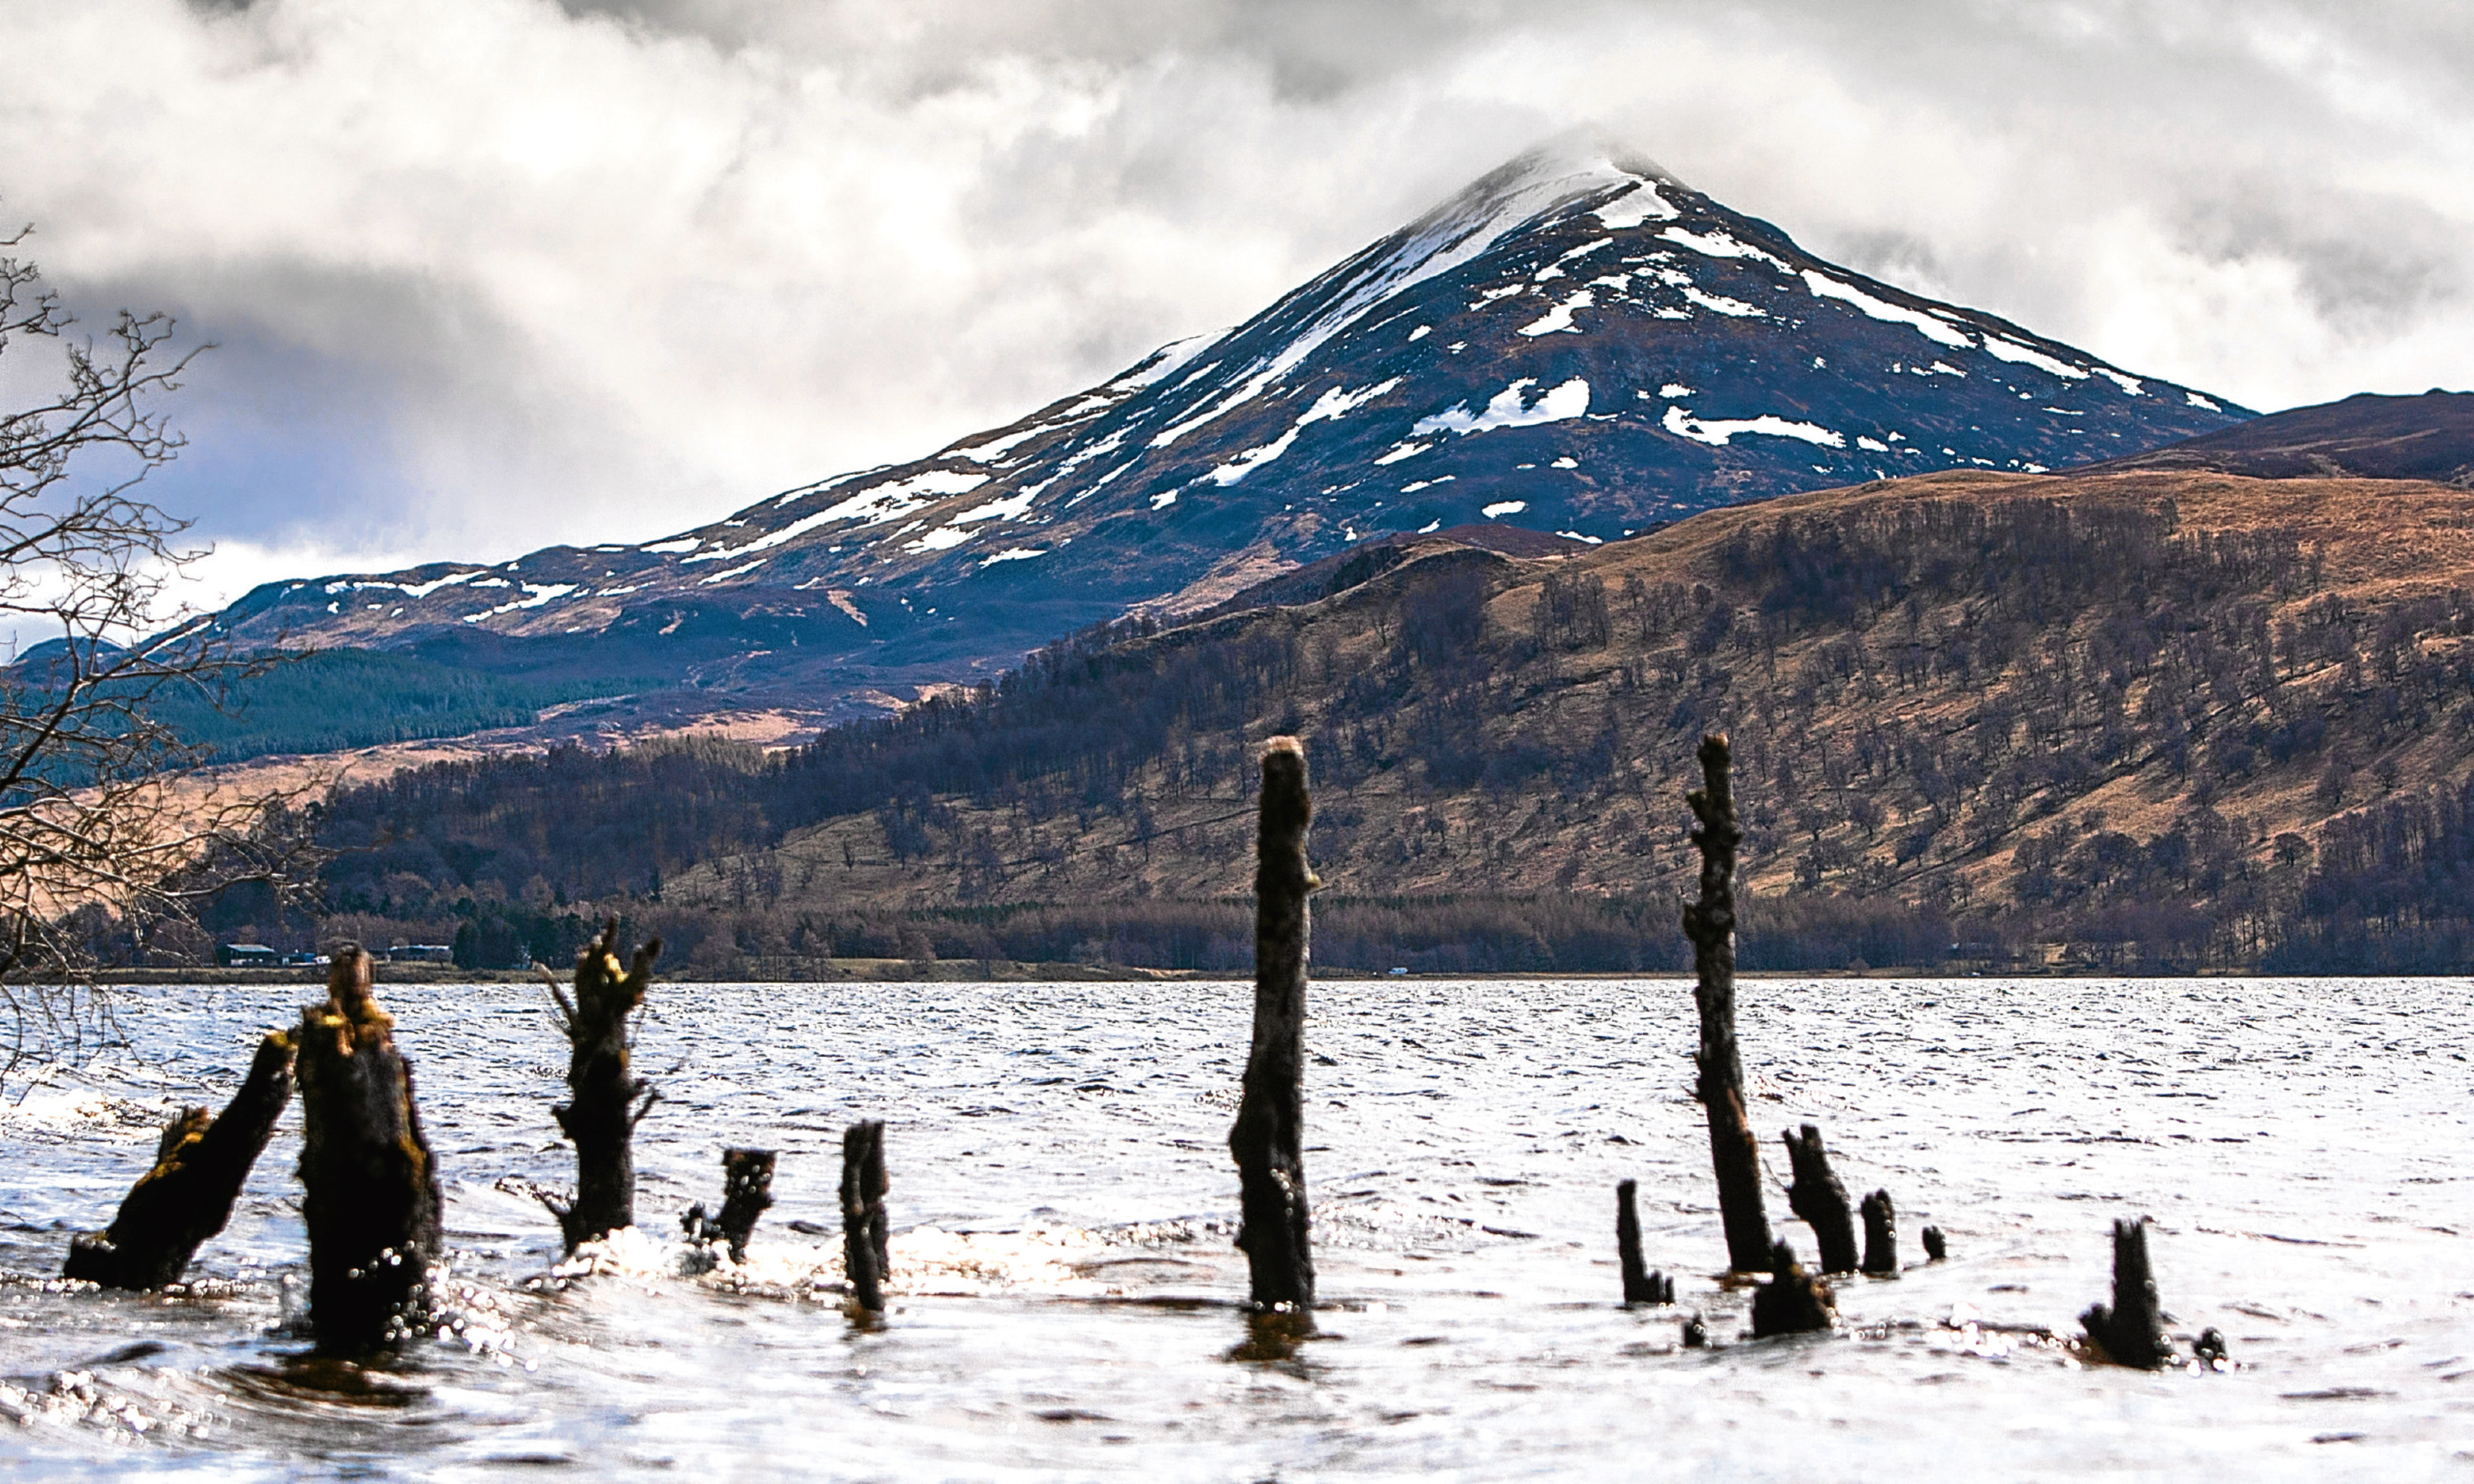 Loch Rannoch and Schiehallion.